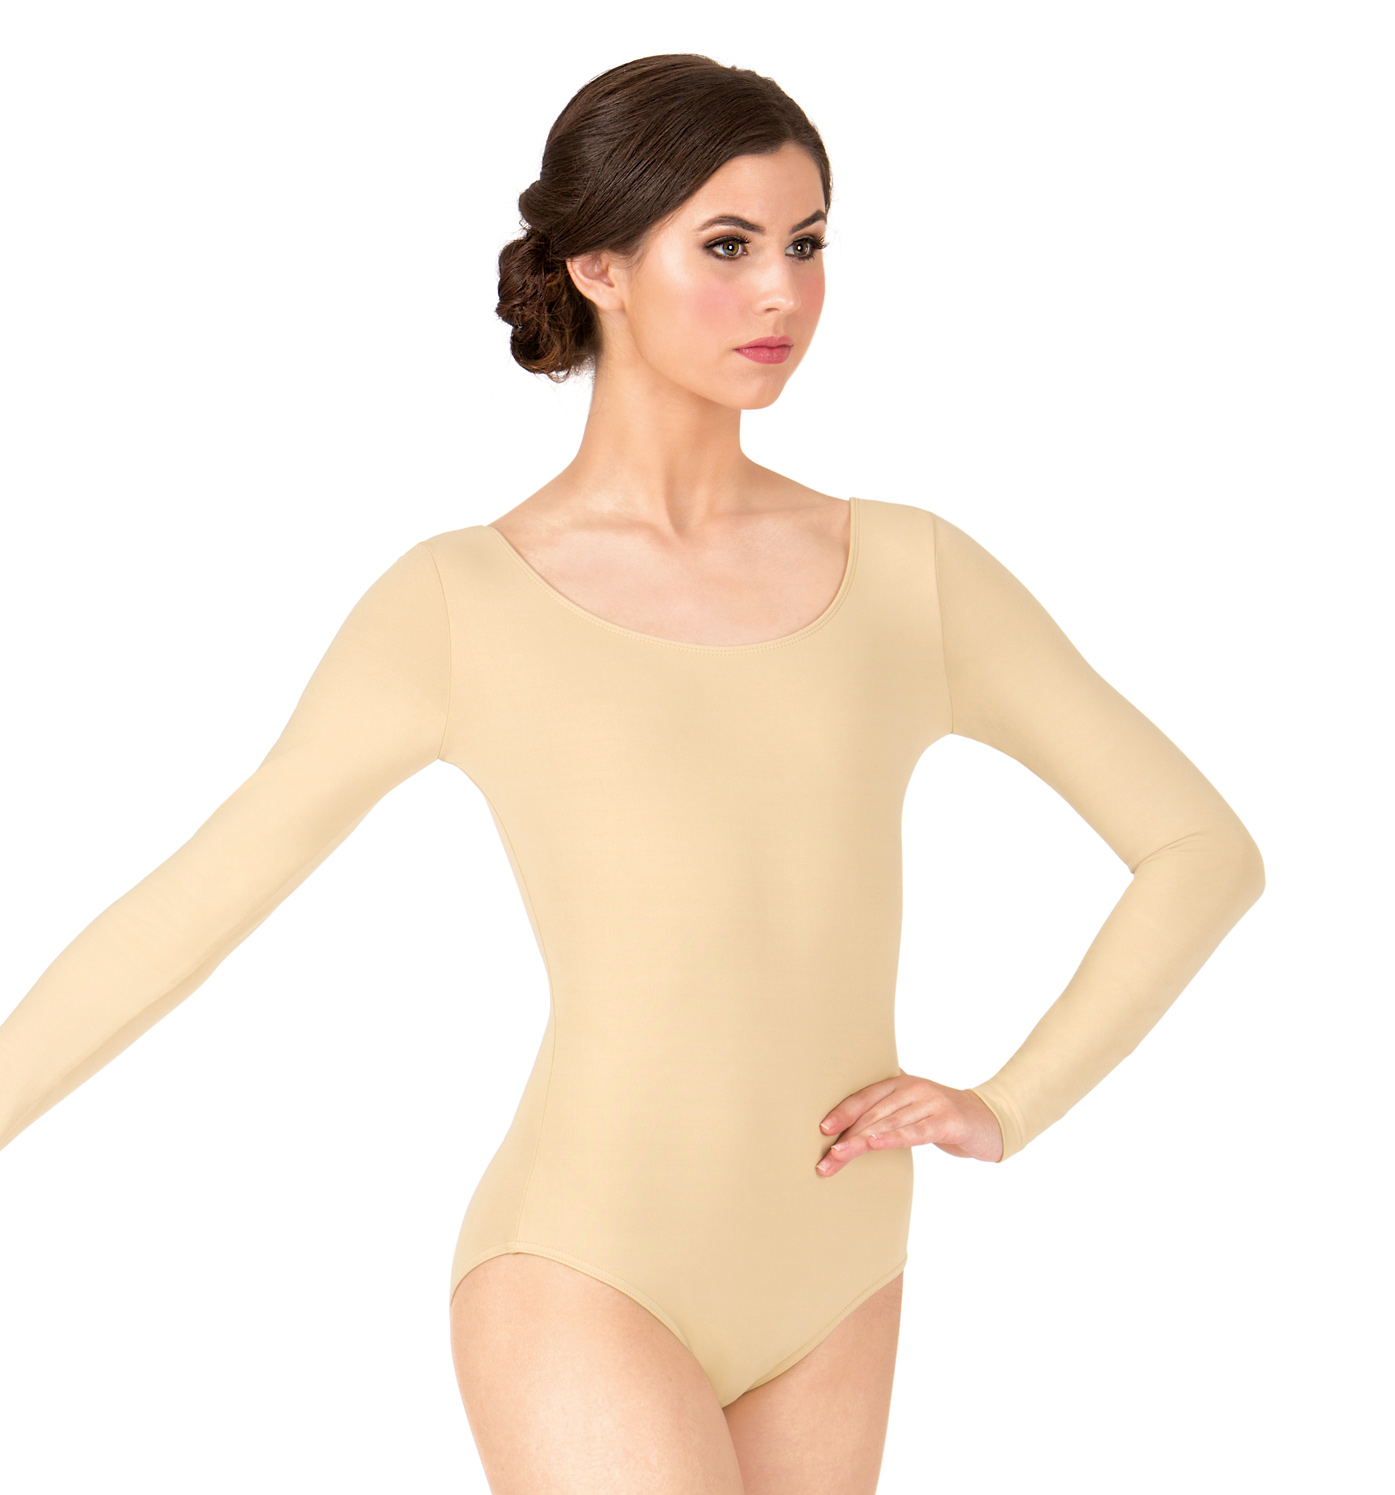 Dancewear Central is the leading dancewear specialist throughout the UK. We believe that dance is the ultimate art form and is the perfect way to express yourself, and that's why we only stock quality dancewear that will give you the freedom and comfort to move and perform.